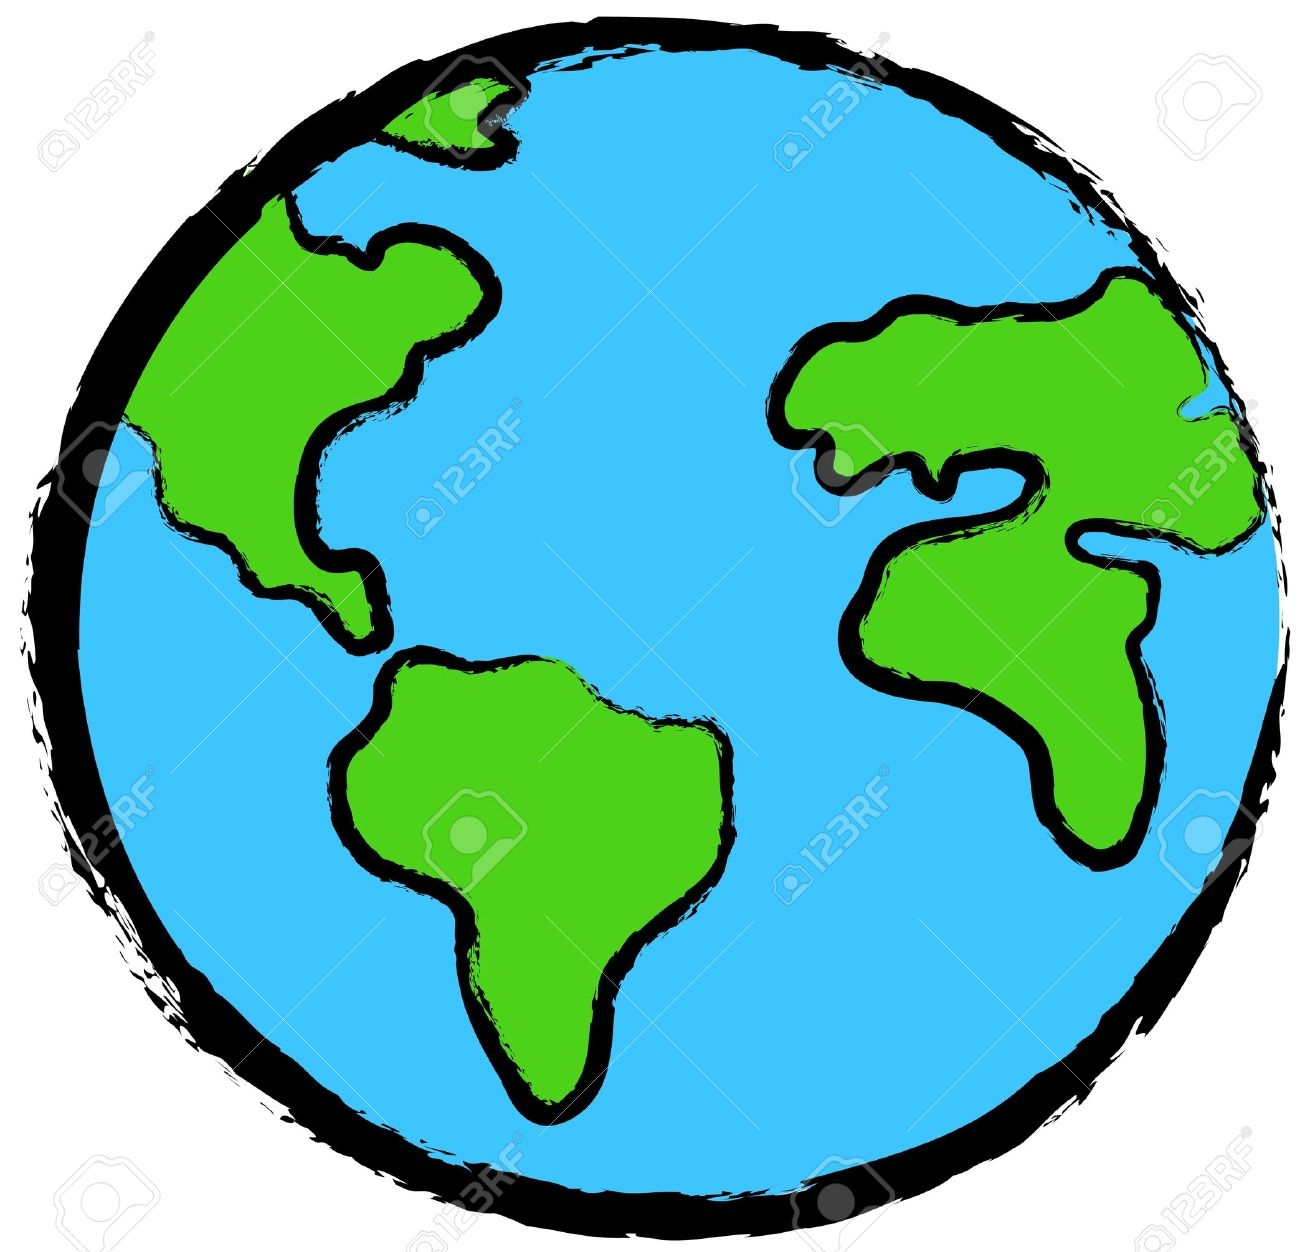 planet earth clipart at getdrawings com free for personal use rh getdrawings com earth clip art images earth clip art for kids